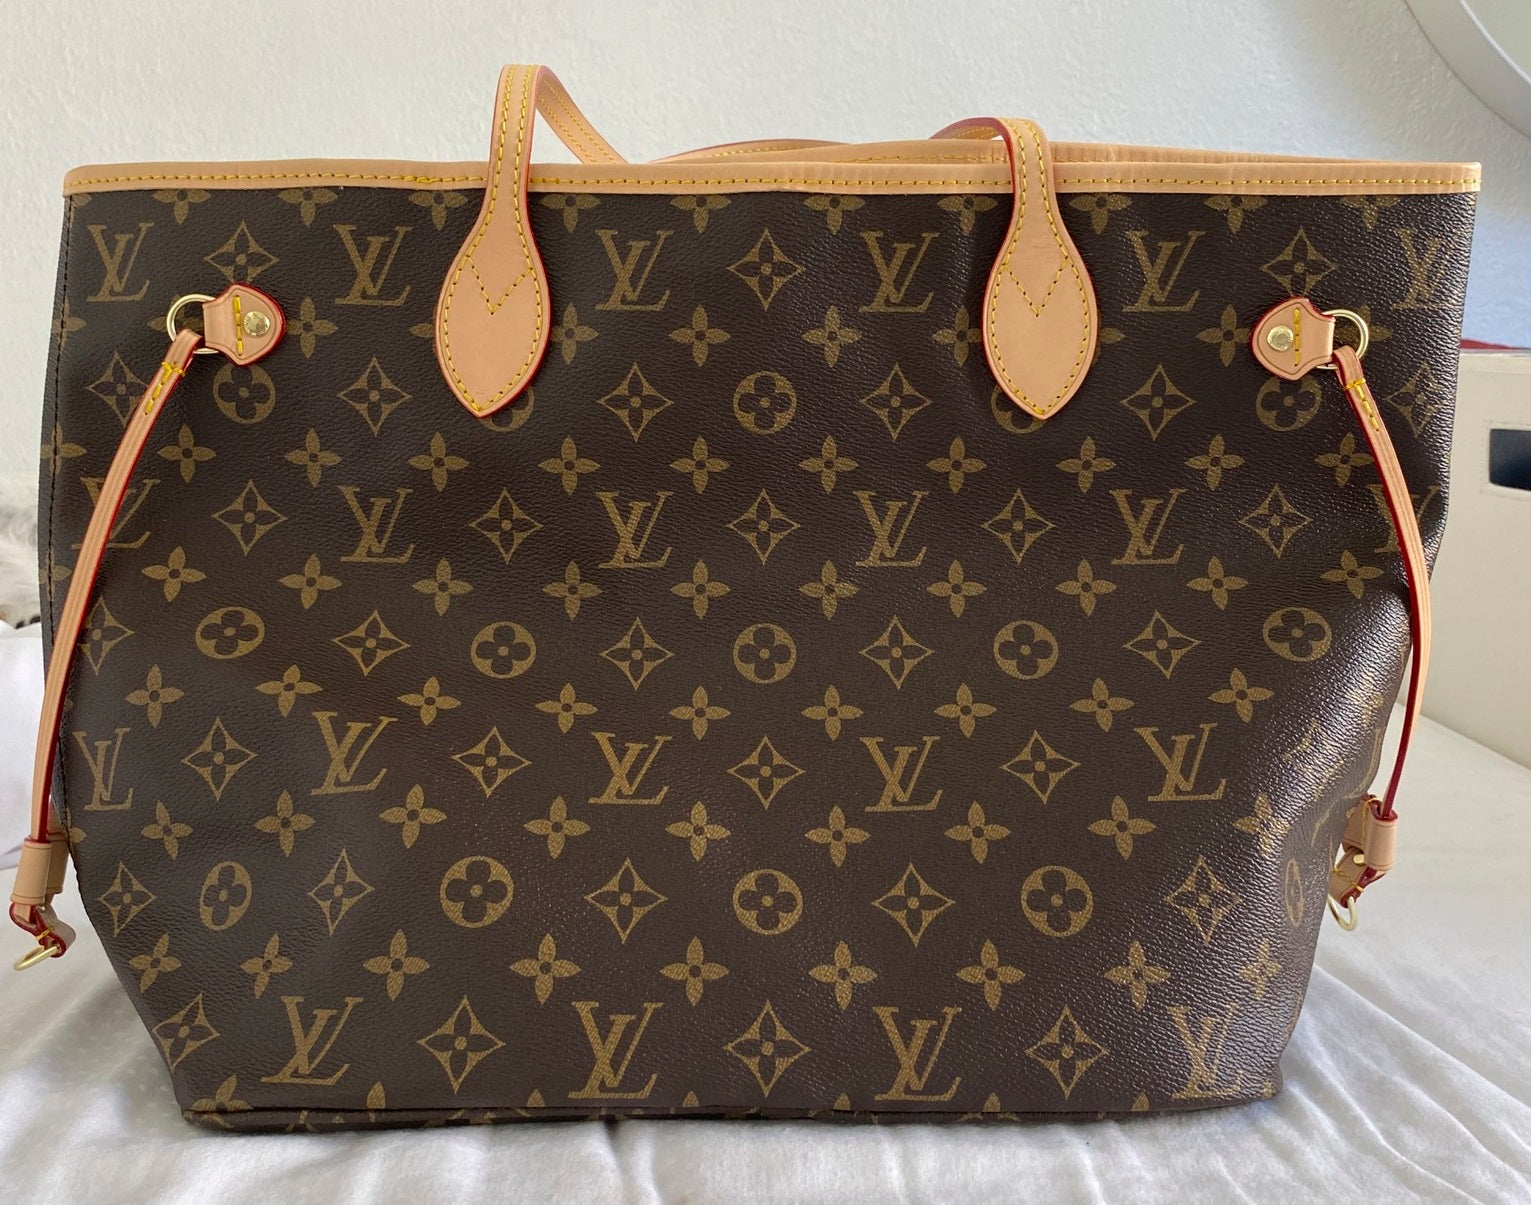 Fake Louis Vuitton Neverfull vs Real: Important Details You Should Definitely Pay Attention To (With Photo Examples) Neverfull Monogram overall view